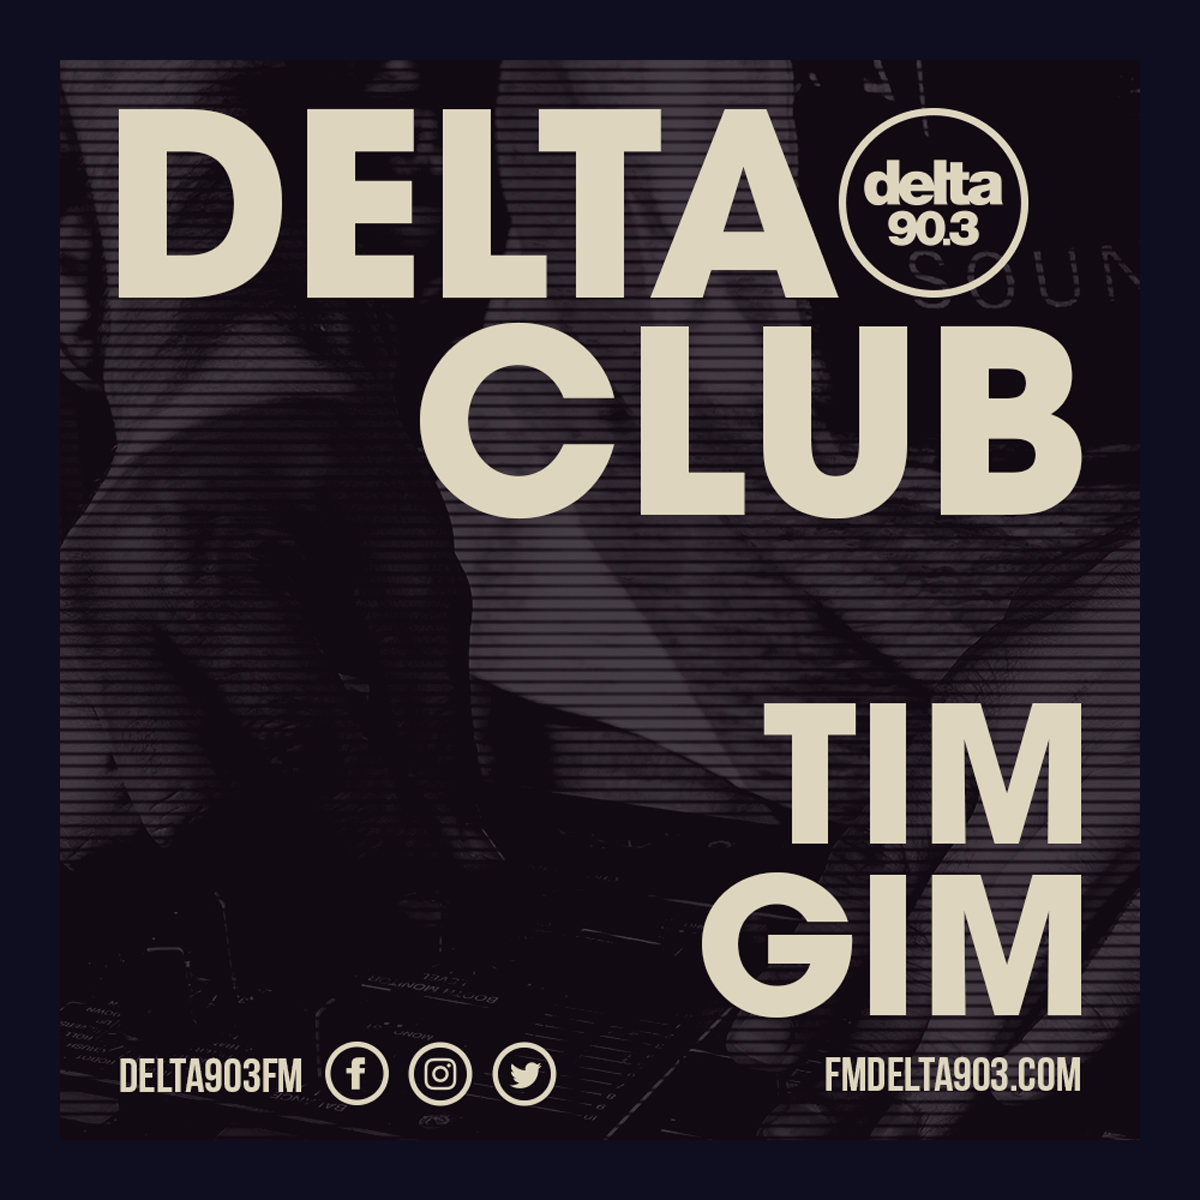 Delta Podcasts - Delta Club presents Tim Gim (05.07.2018)